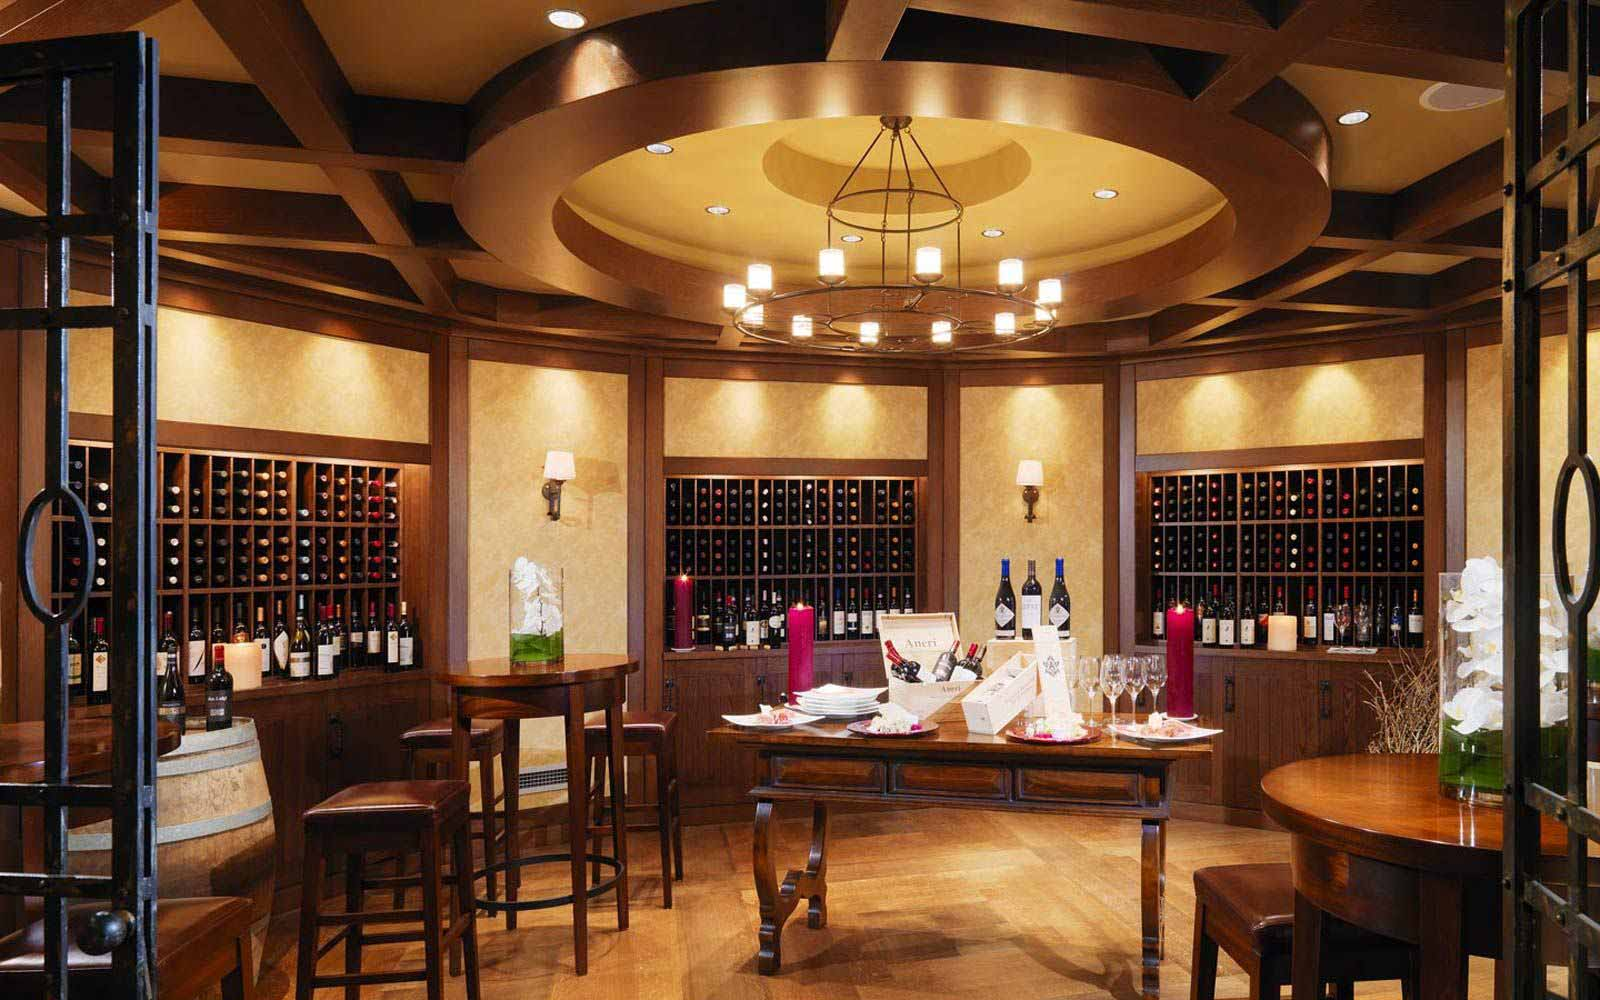 VinOrvm wine cellar at The Westin Excelsior